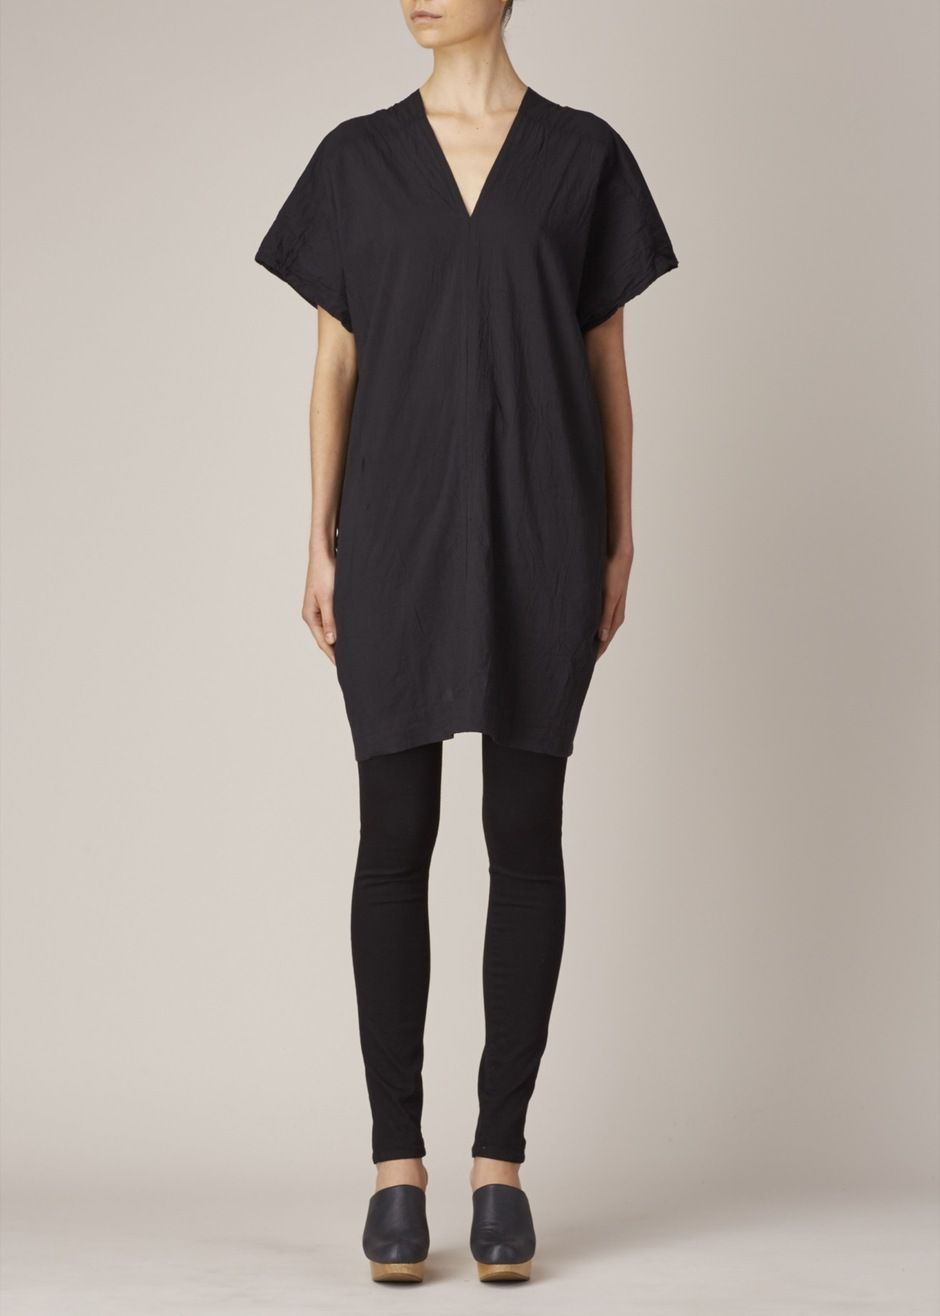 3139fa6ec2c UZI Oversized V-Neck Dress (Black)